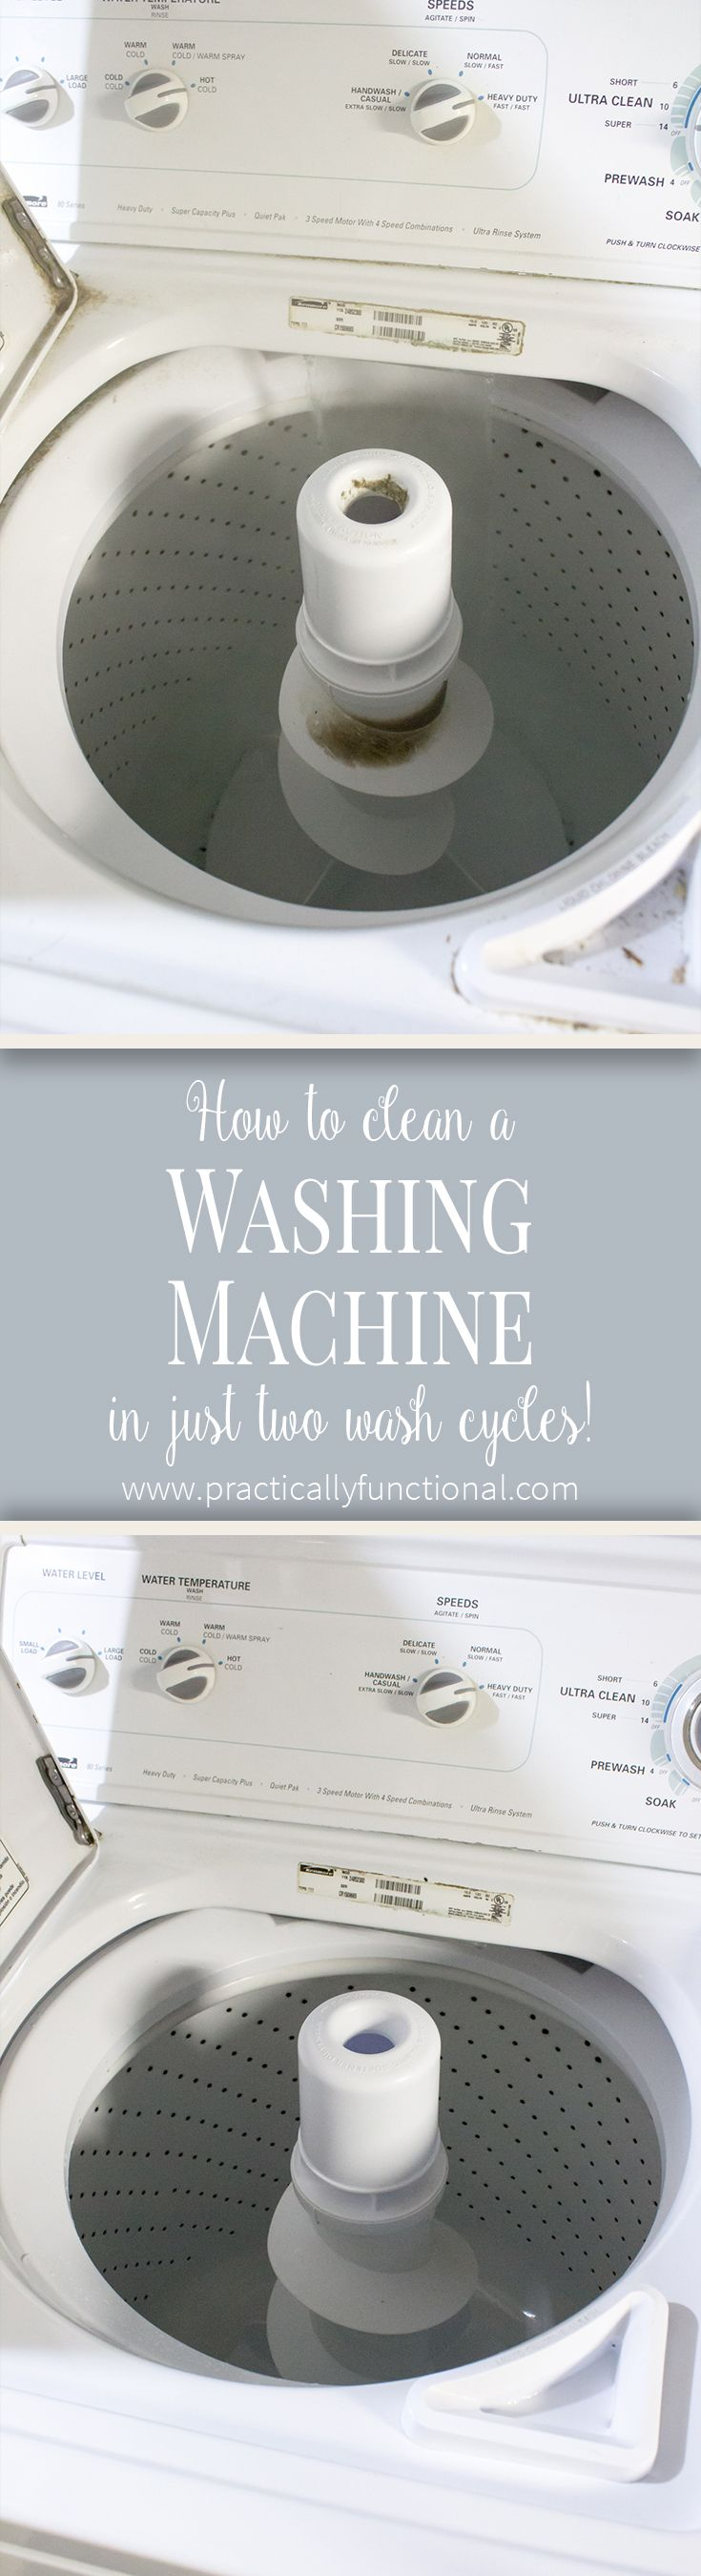 How to clean your washing machine - step by step instructions using vinegar and bleach to clean grunge, soap scum, and mineral deposits in the drum and in the pipes and hoses!